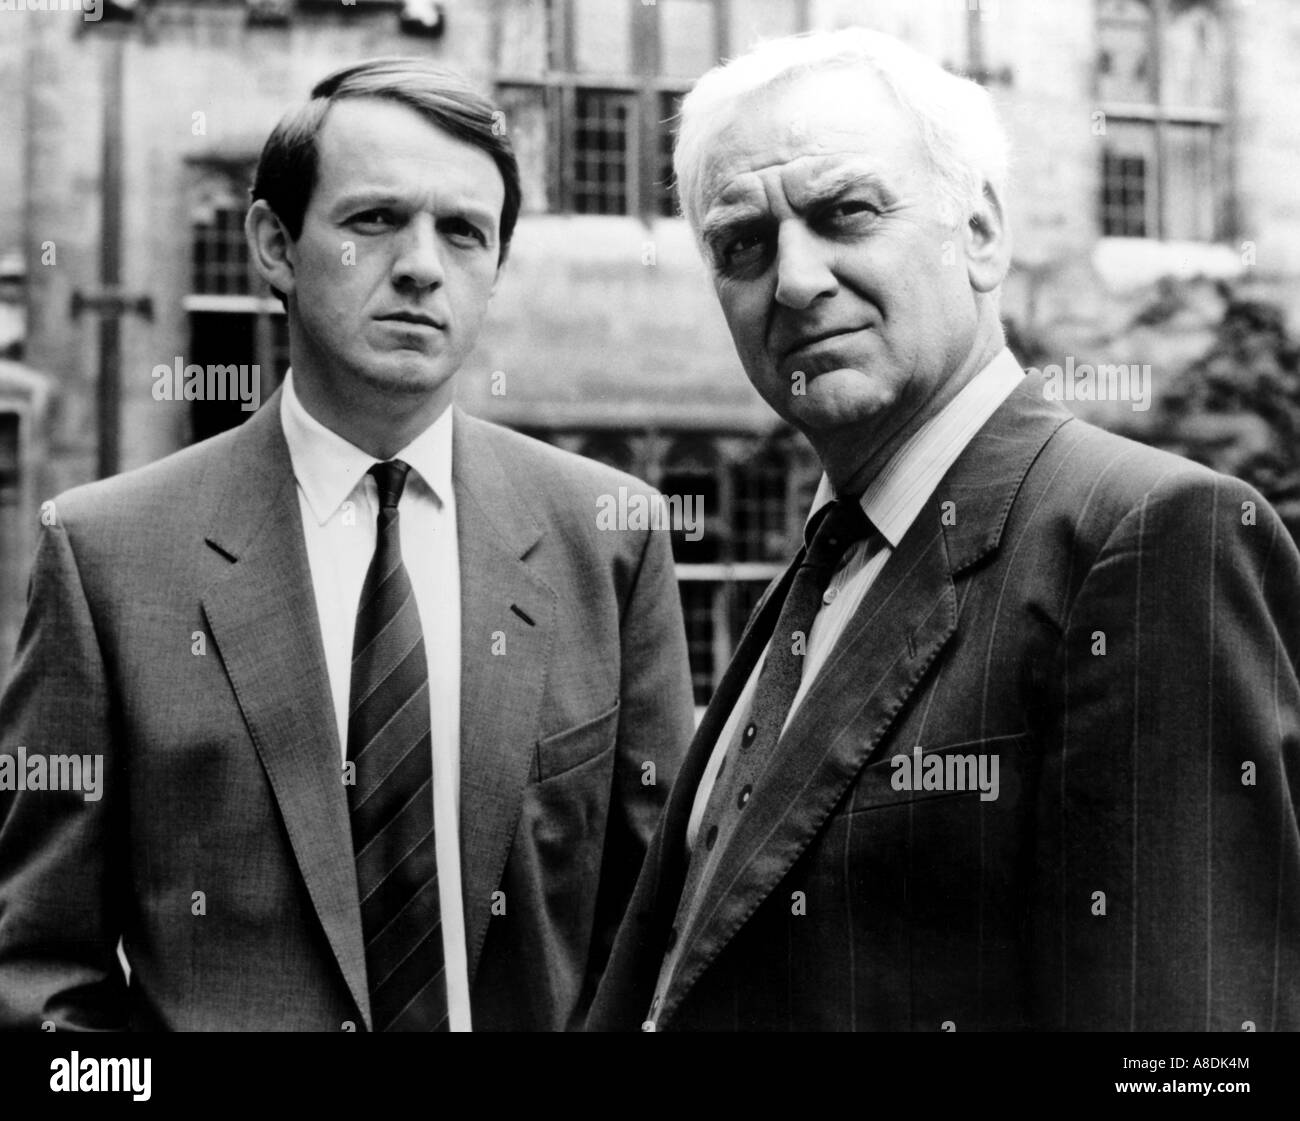 INSPECTOR MORSE - UK ITV series 1987 to 2000 with Kevin Whately at left as Dec Sgt Lewis and John Thaw as Chief - Stock Image